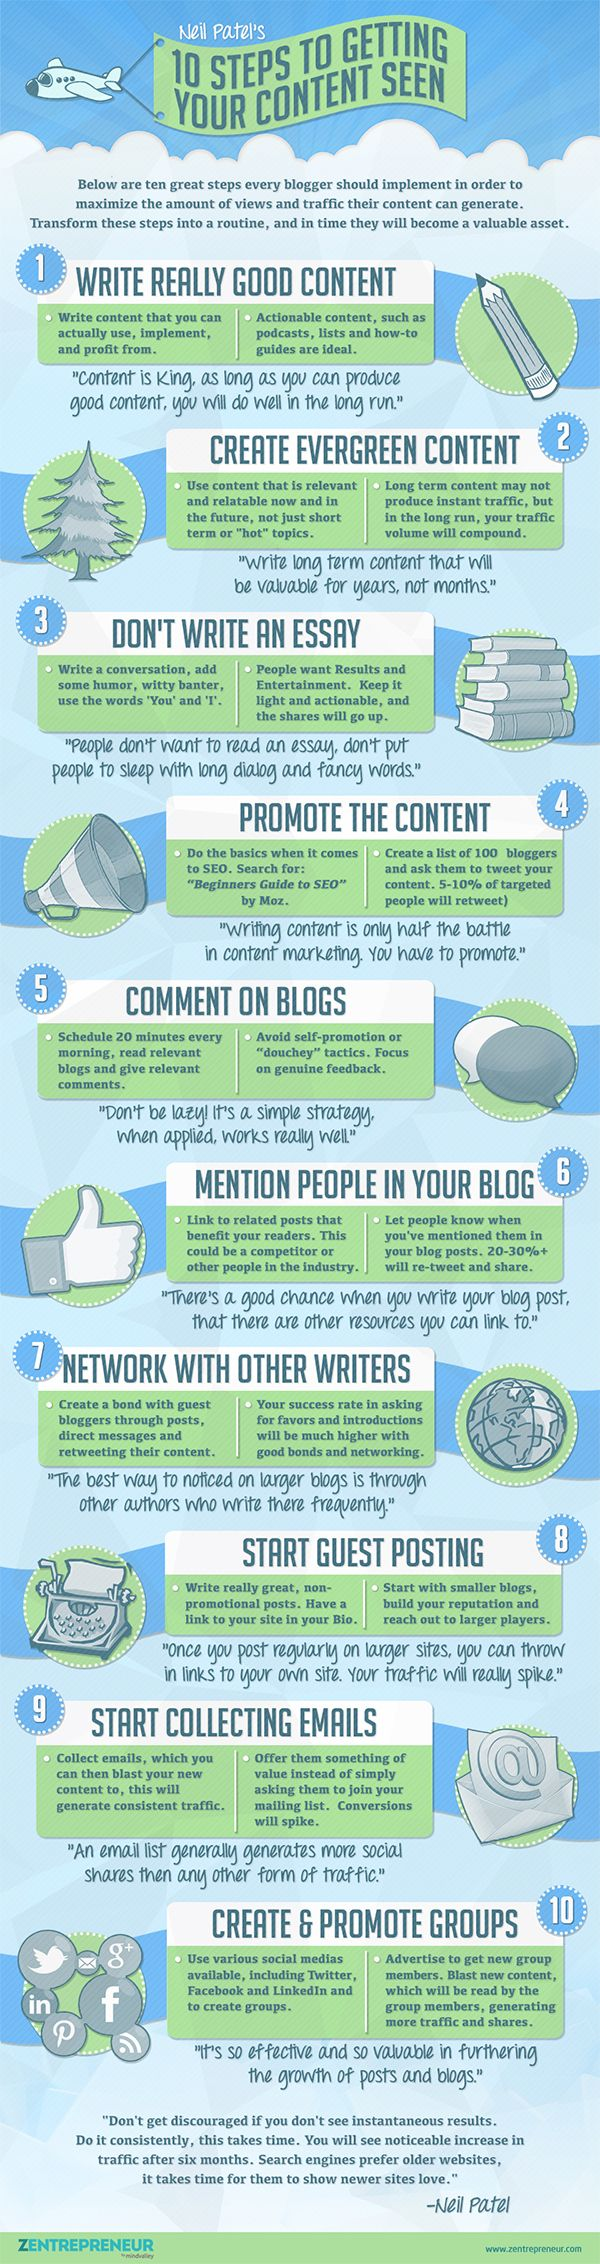 Blogging Tips 10 Steps to Generate a Ridiculous Amount of Blog Traffic #Infographic